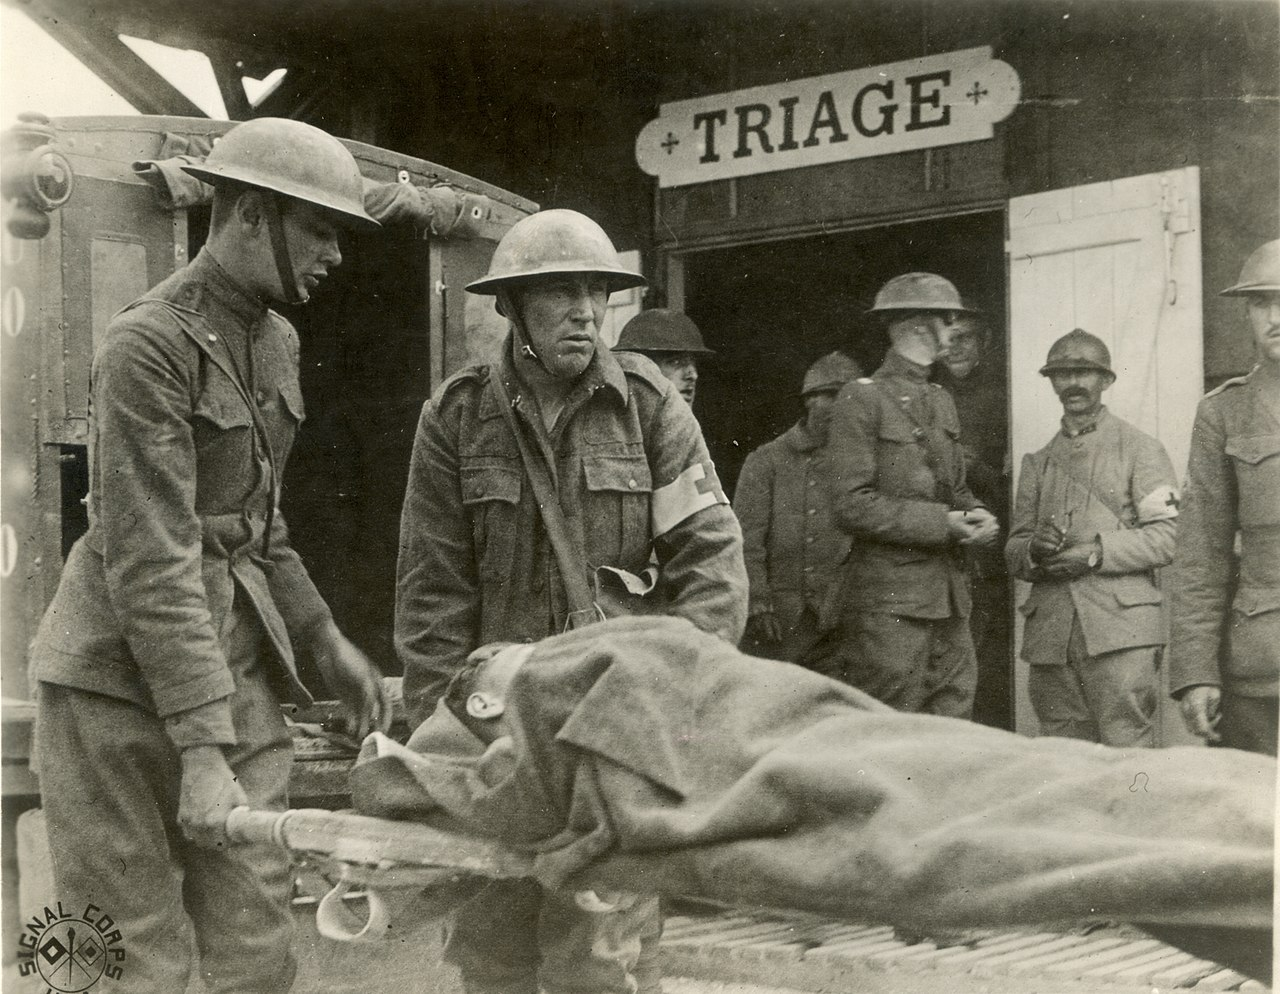 Wounded Triage France WWI.jpg